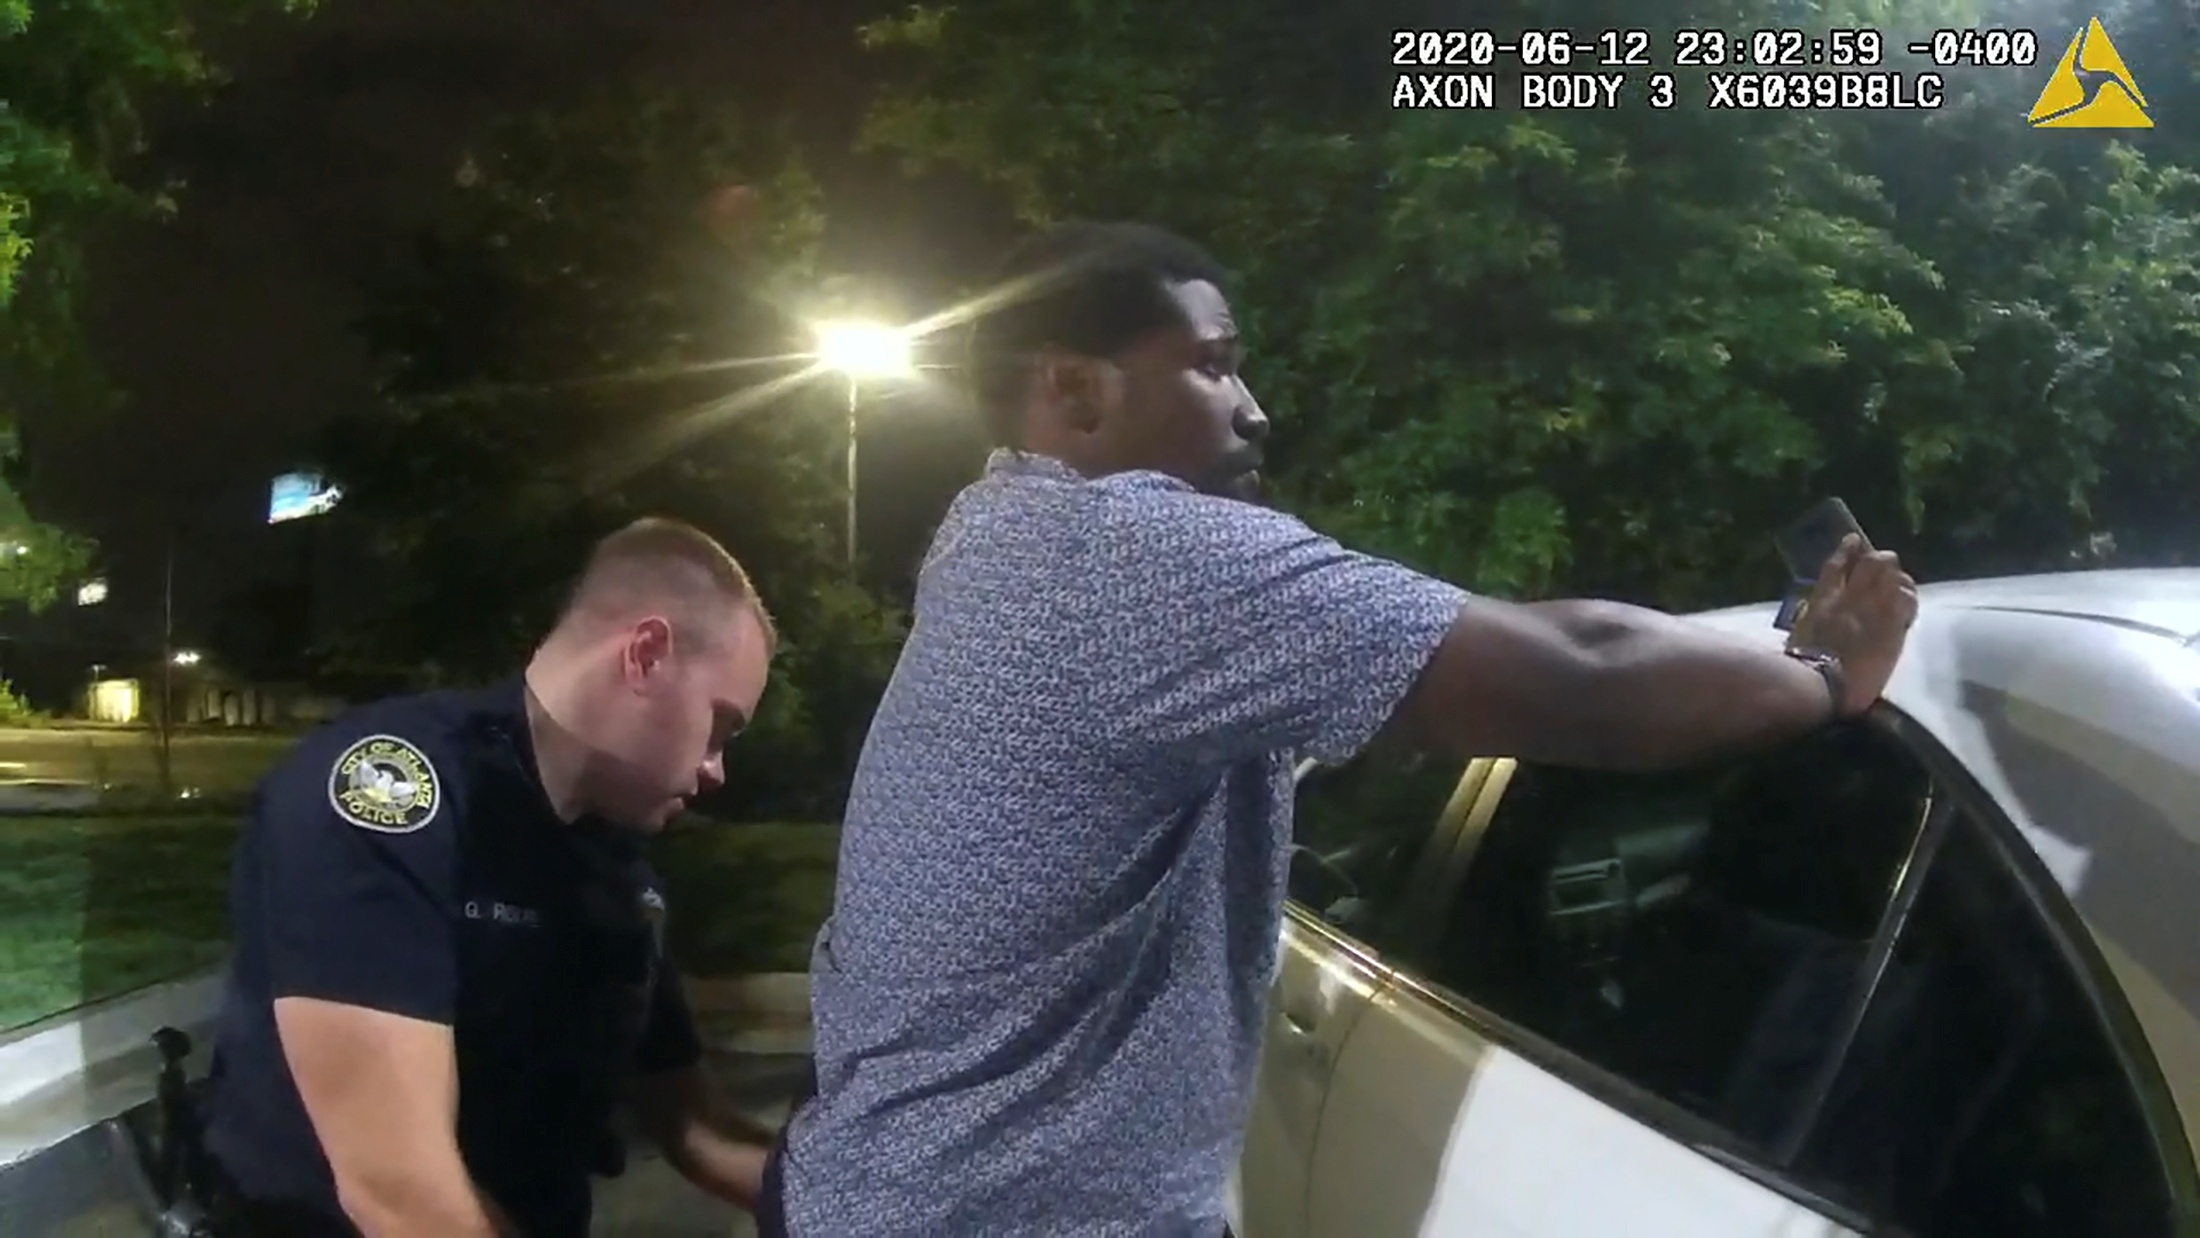 Former Atlanta Police Department officer Garrett Rolfe searches 27-year-old Rayshard Brooks in a Wendy's restaurant parking lot in a still image from the video body camera of officer Devin Bronsan in Atlanta, Georgia, U.S. June 12, 2020. Video taken June 12, 2020. Atlanta Police Department/Handout via REUTERS.